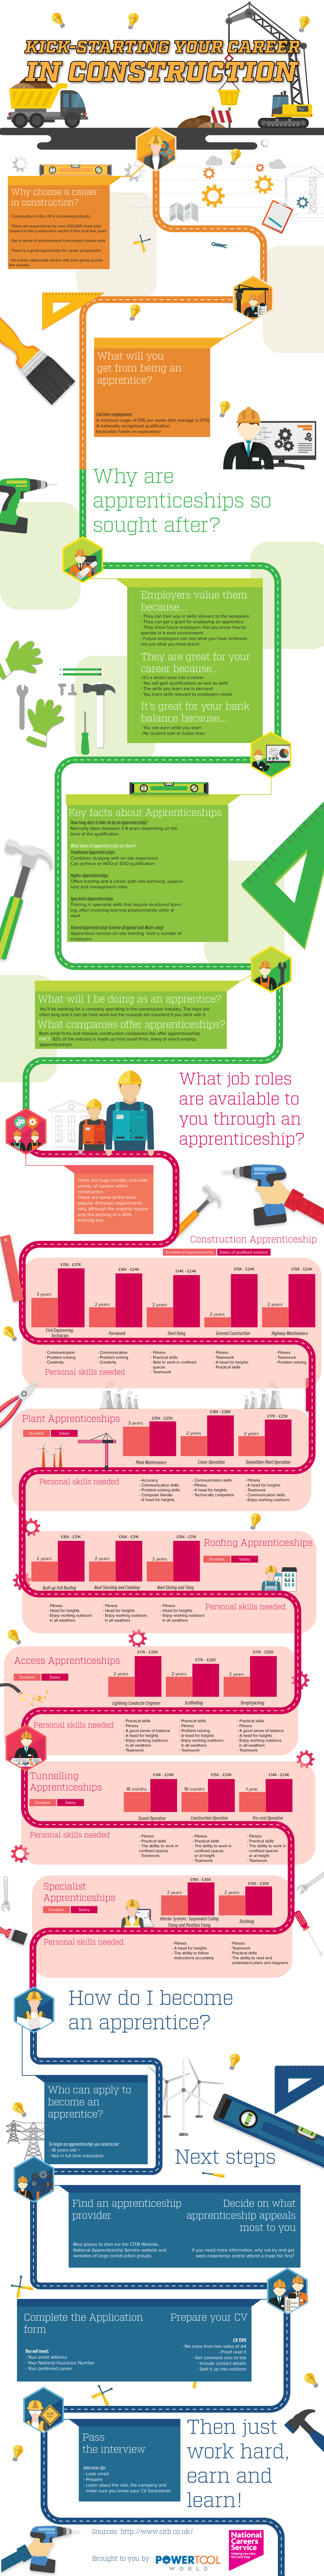 Apprenticeships in construction infographic